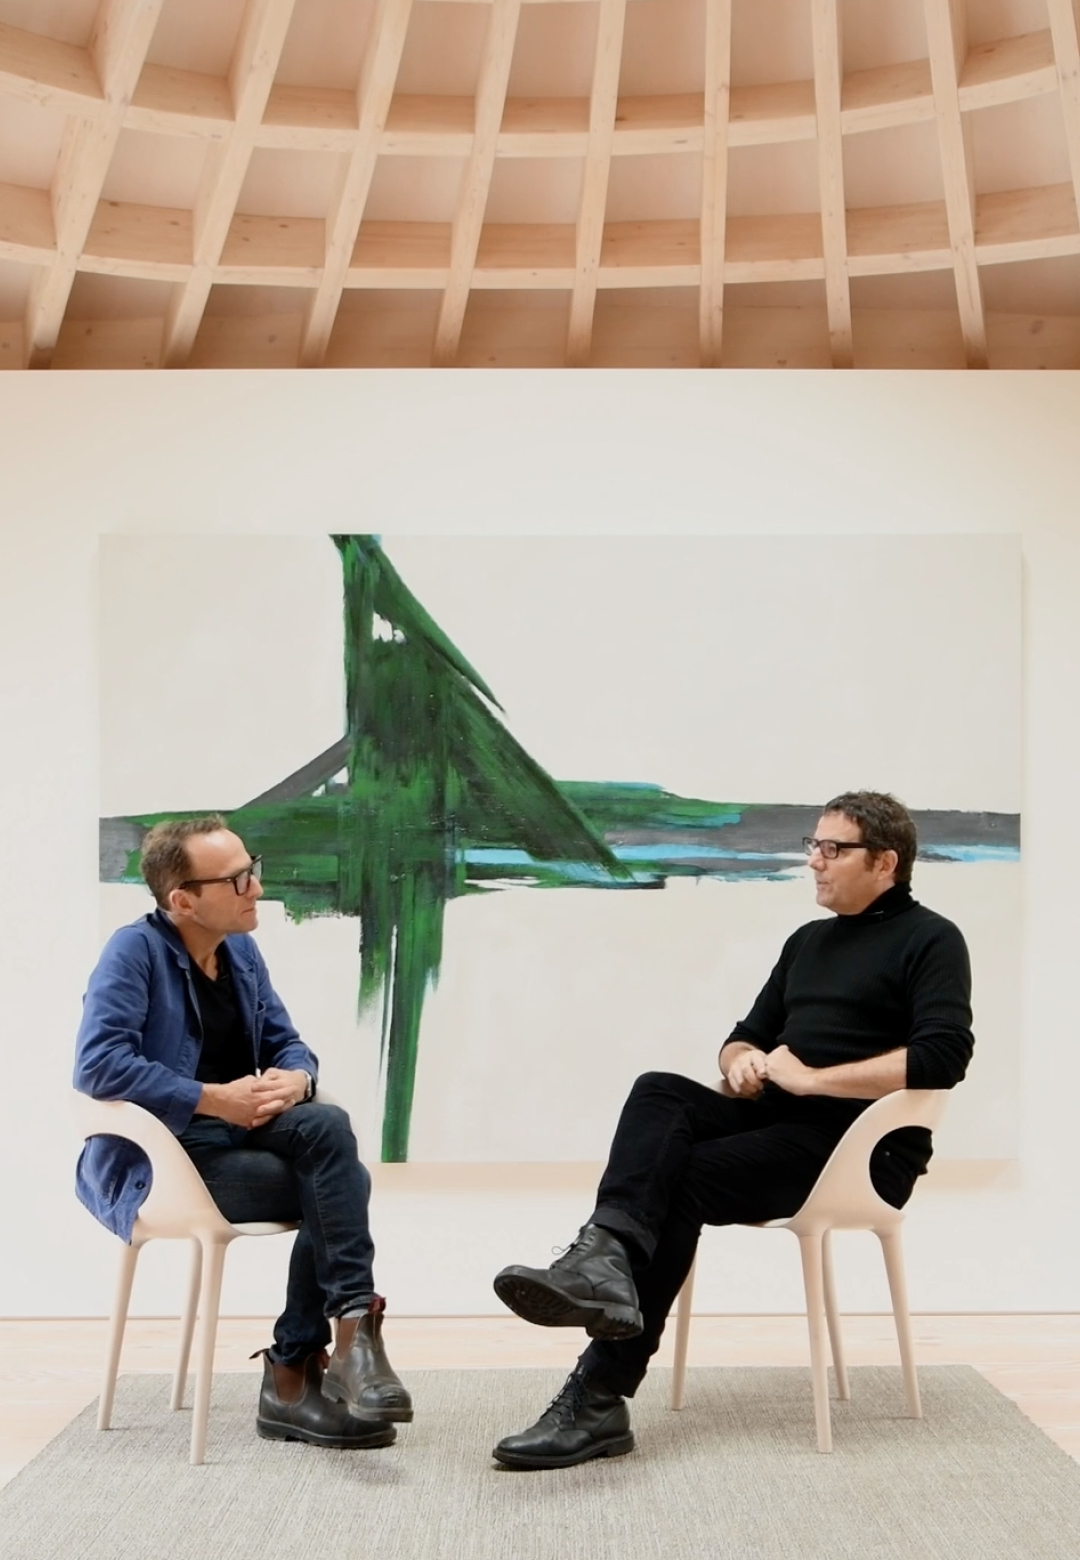 Gianni Botsford in conversation with Piers Taylor | Gianni Botsford | House in a Garden| London | STIRworld